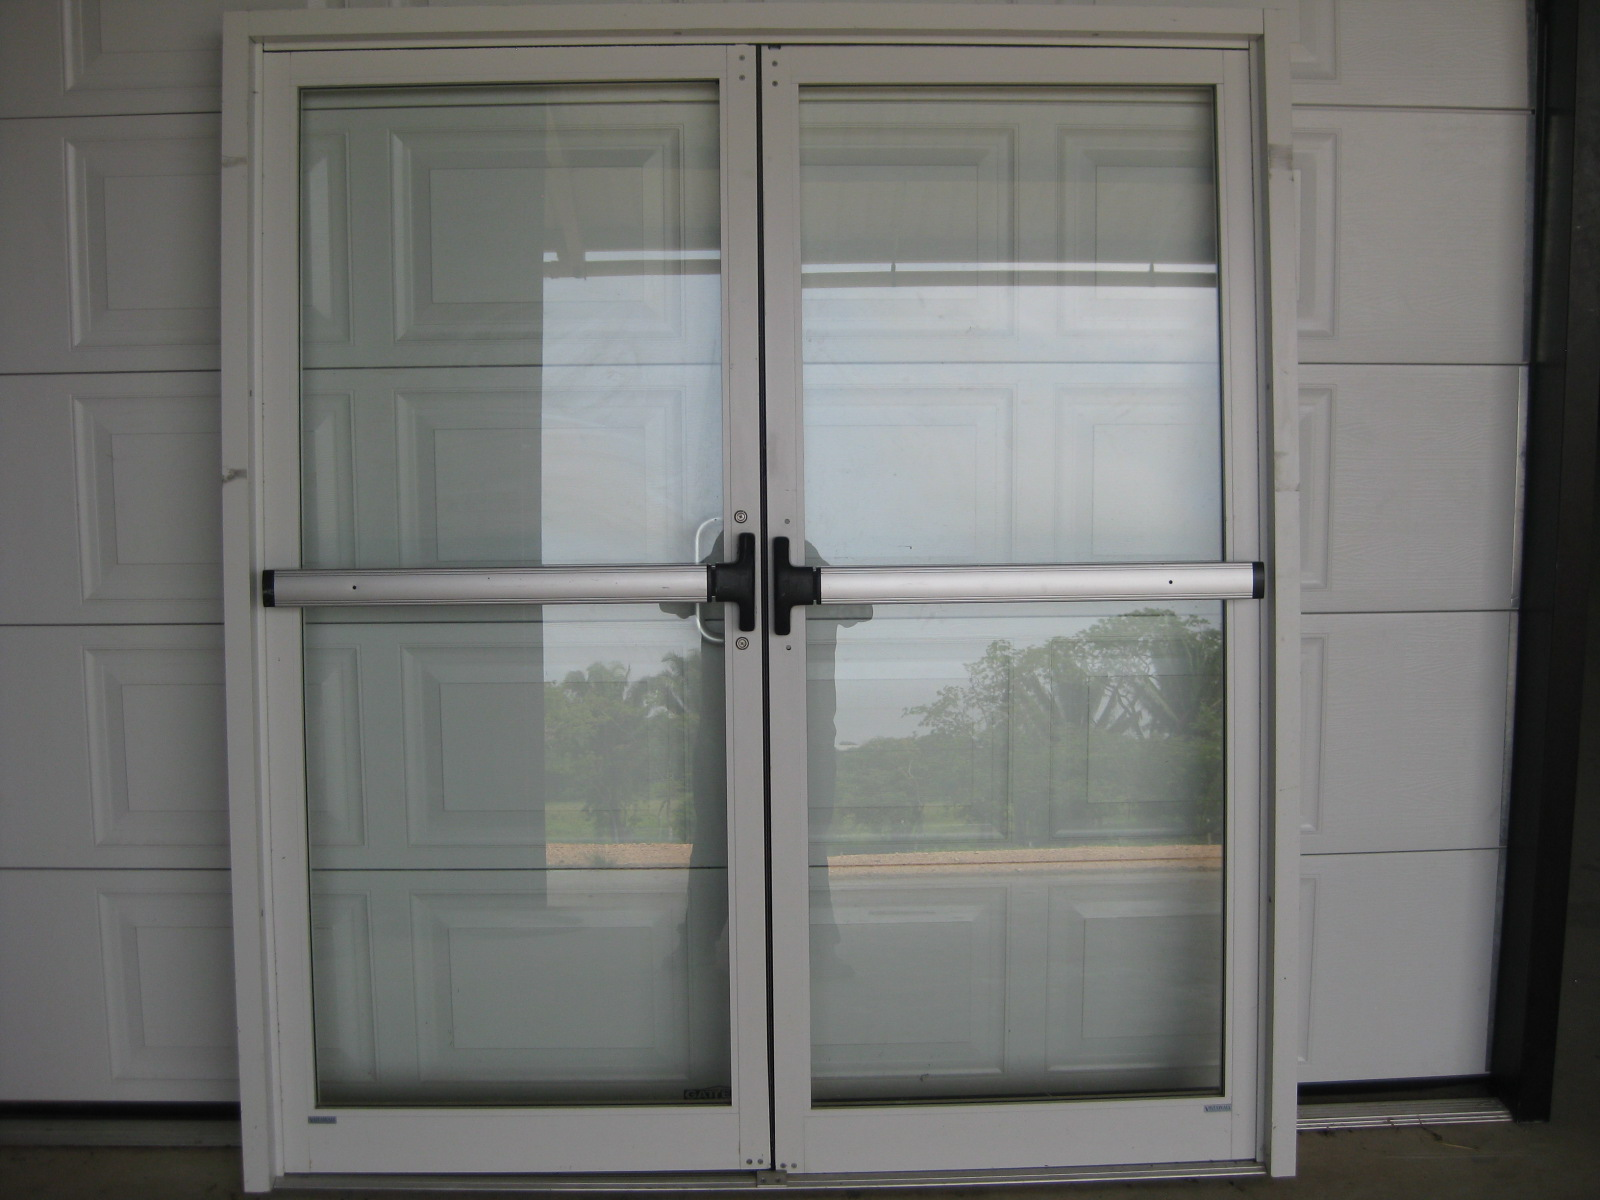 We Can Also Build Double Action Swinging Doors Swings In Out To Suit Your Specific Needs A 4 Aluminum Frame Is Required For